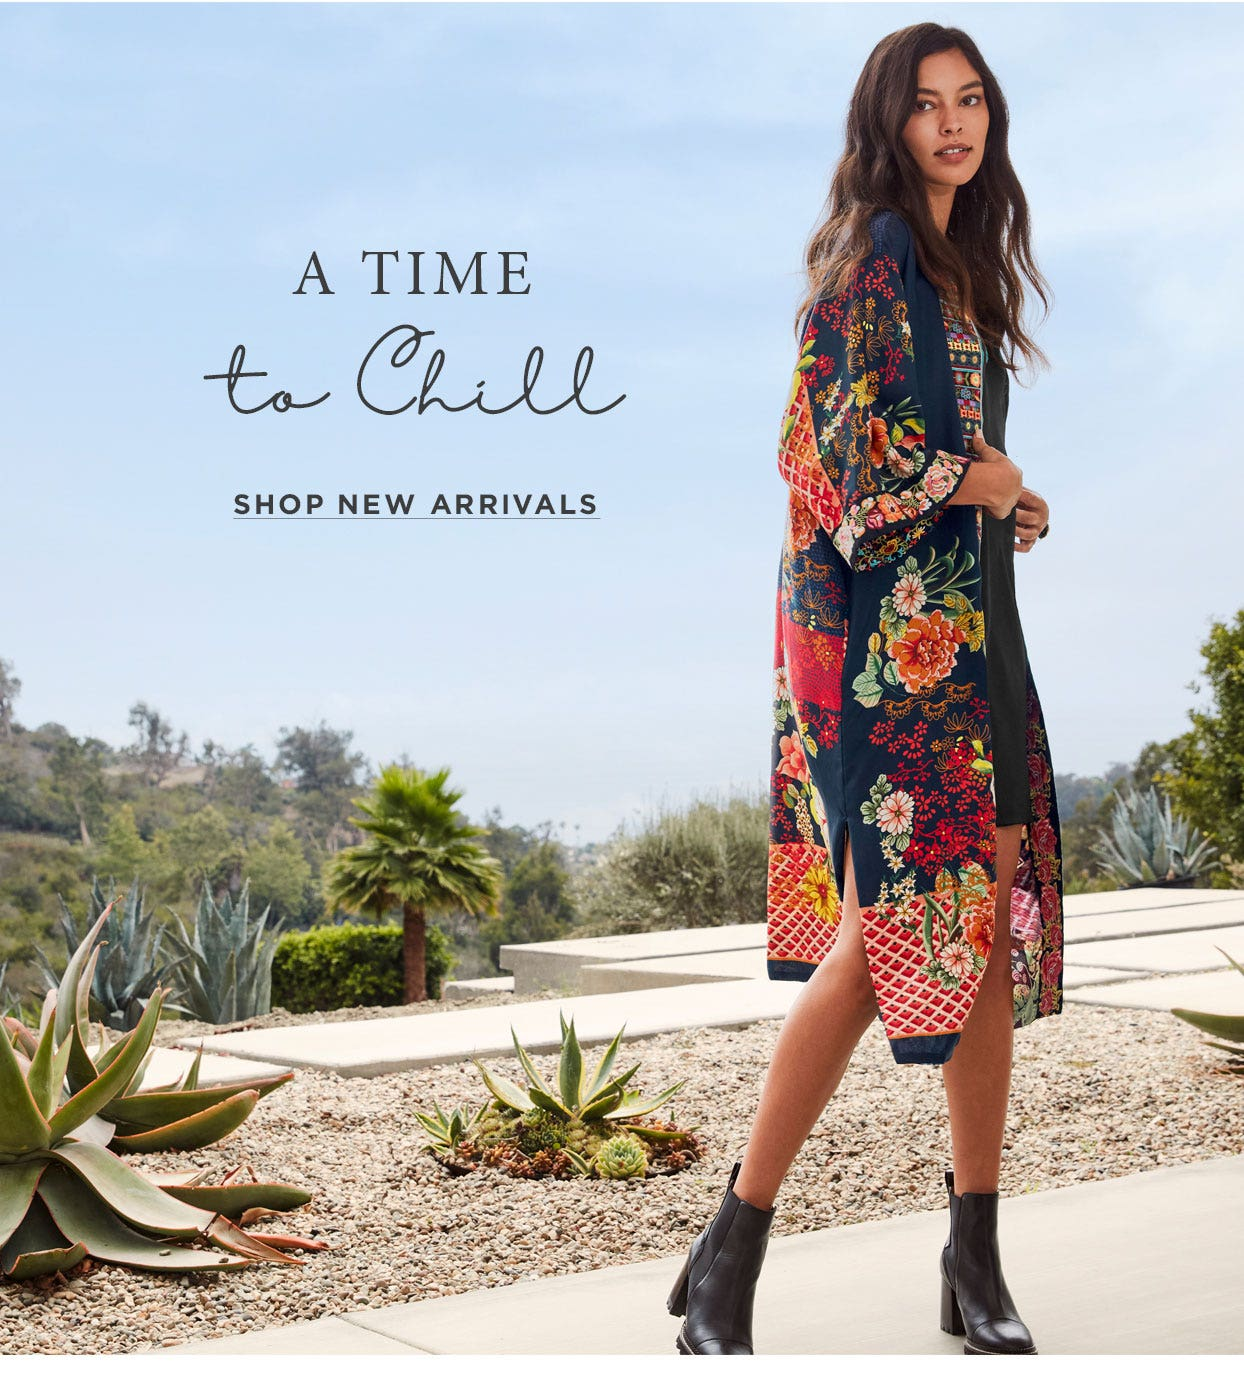 A time to chill -Cozy layers with whimsical patterns add a touch of eye candy. Shop Kimonos